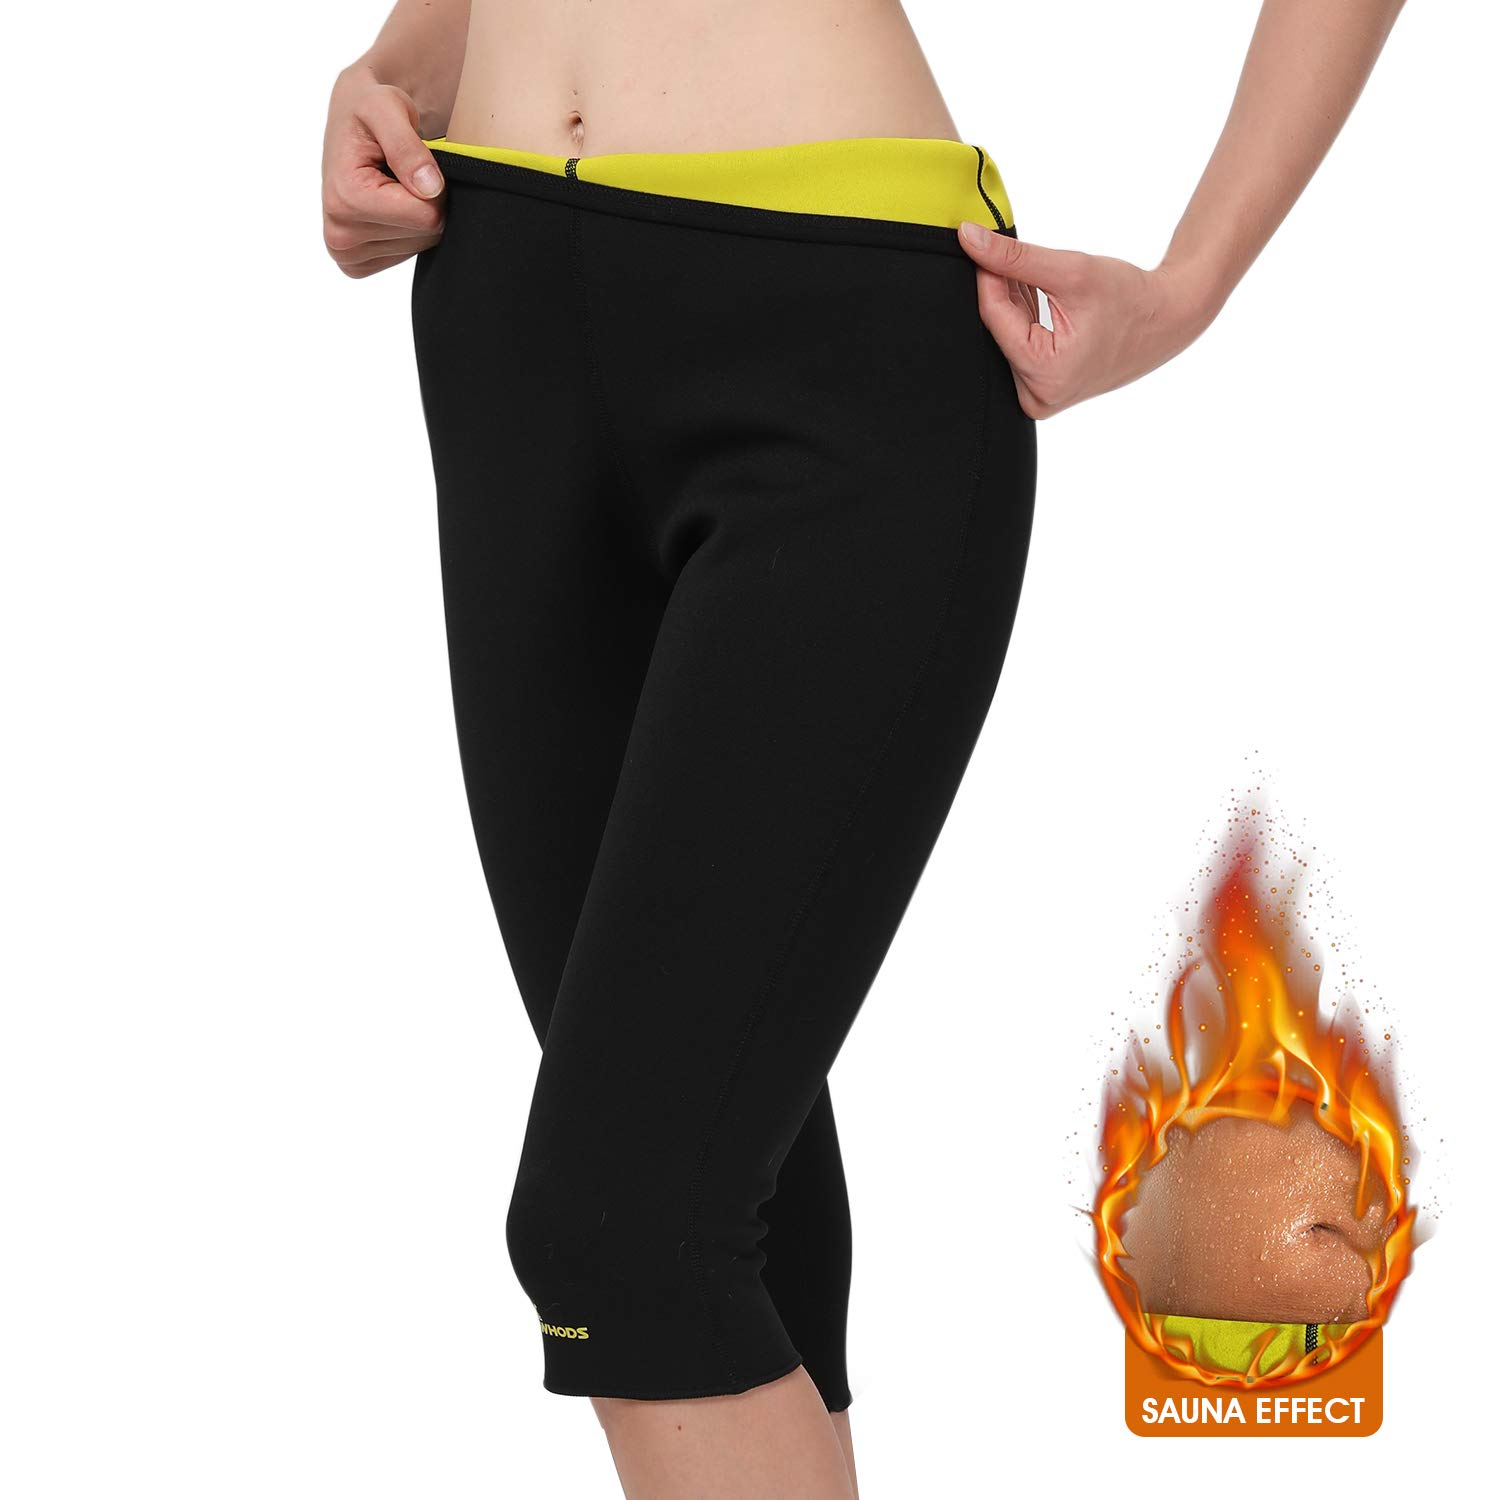 Gowhods Unisex Weight Loss Hot Sweat Sauna Pants – Fat Burning, Leg Slimming, Increasing Sweat, Smoother Skin, Gym Sports Capris Leggings for Indoor Outdoor Workout